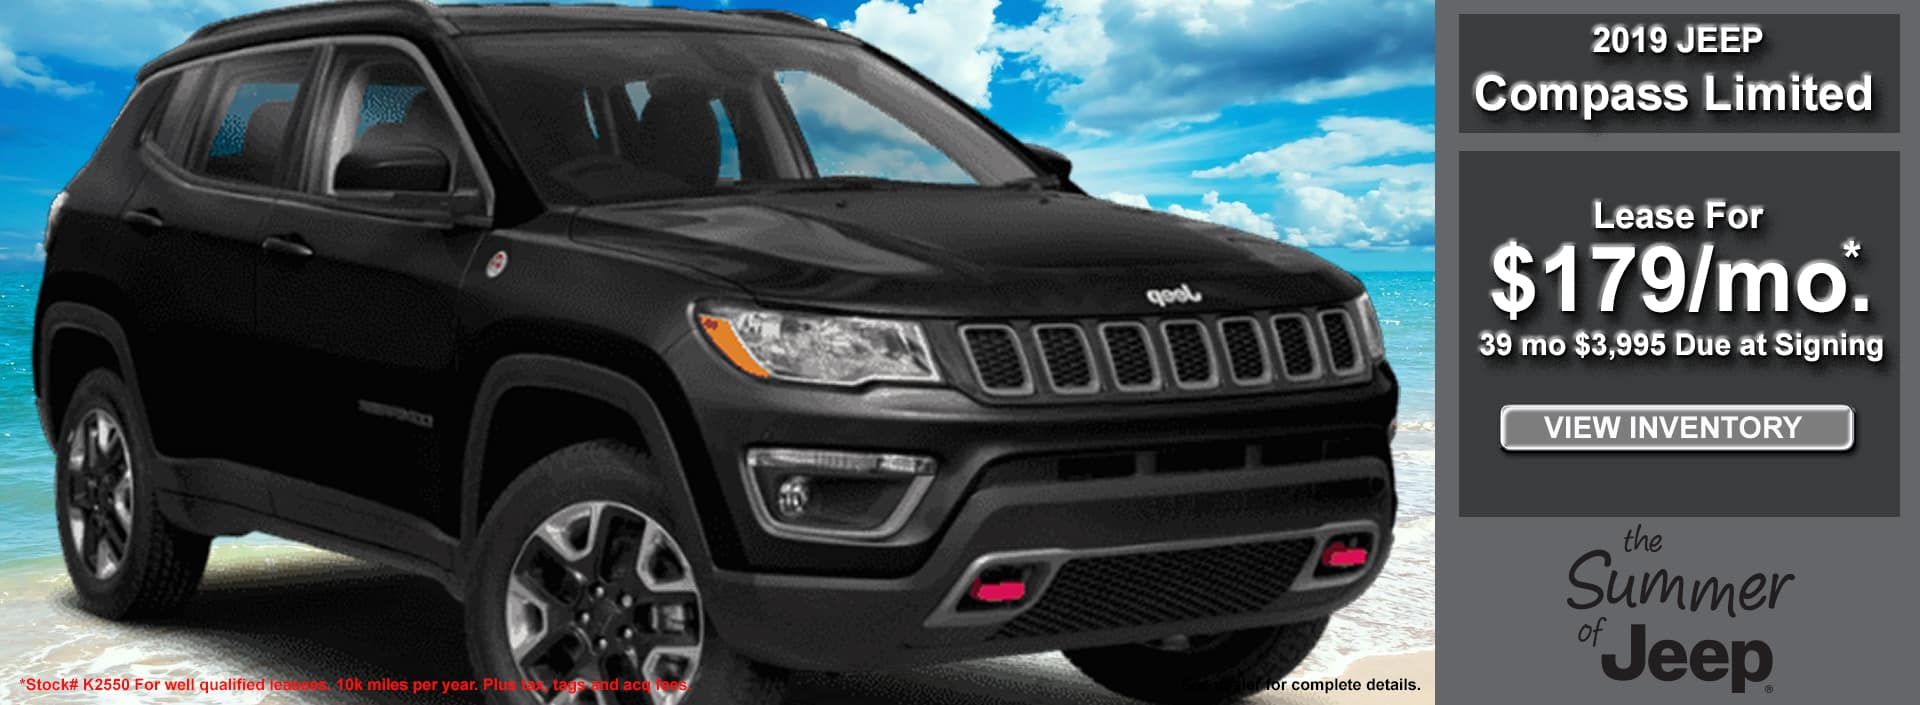 Compass Limited Lease June 2019